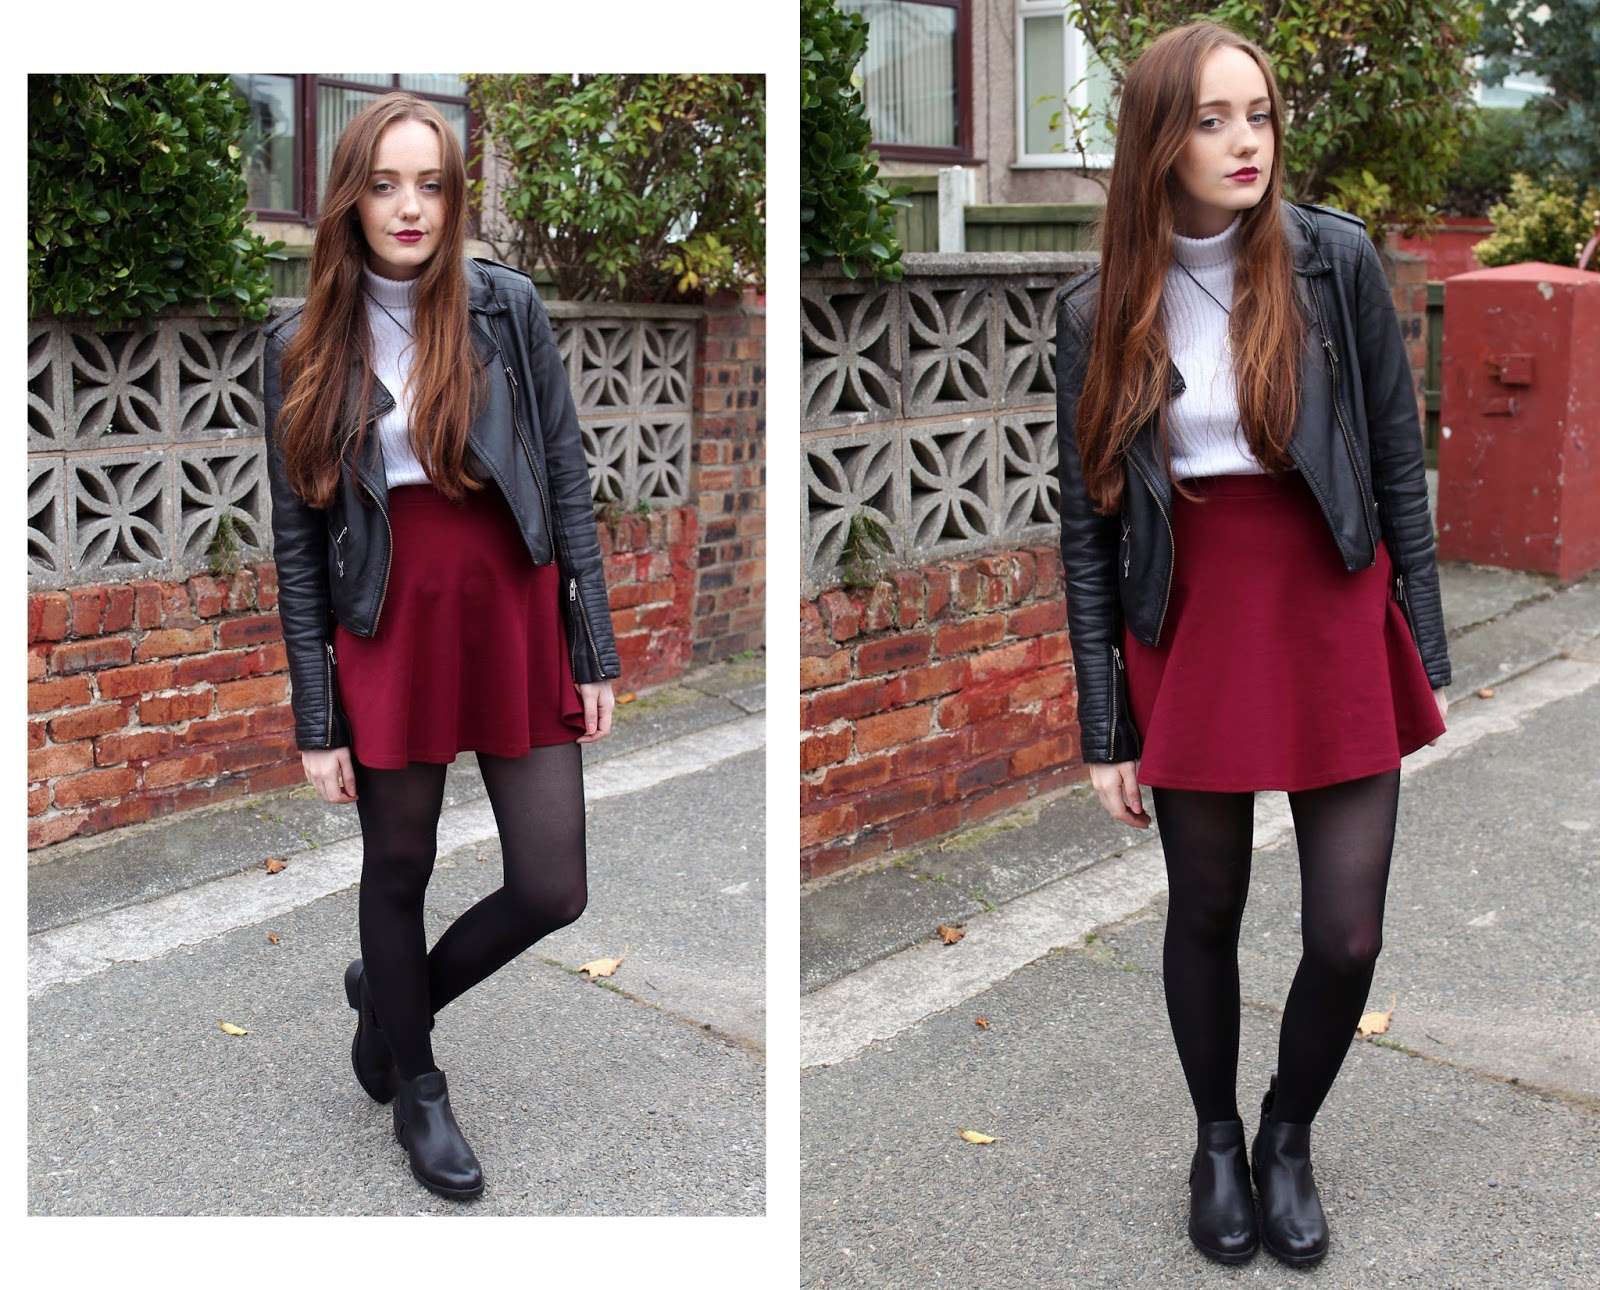 OOTD featuring burgundy skater skirt and black chelsea boots from get the label